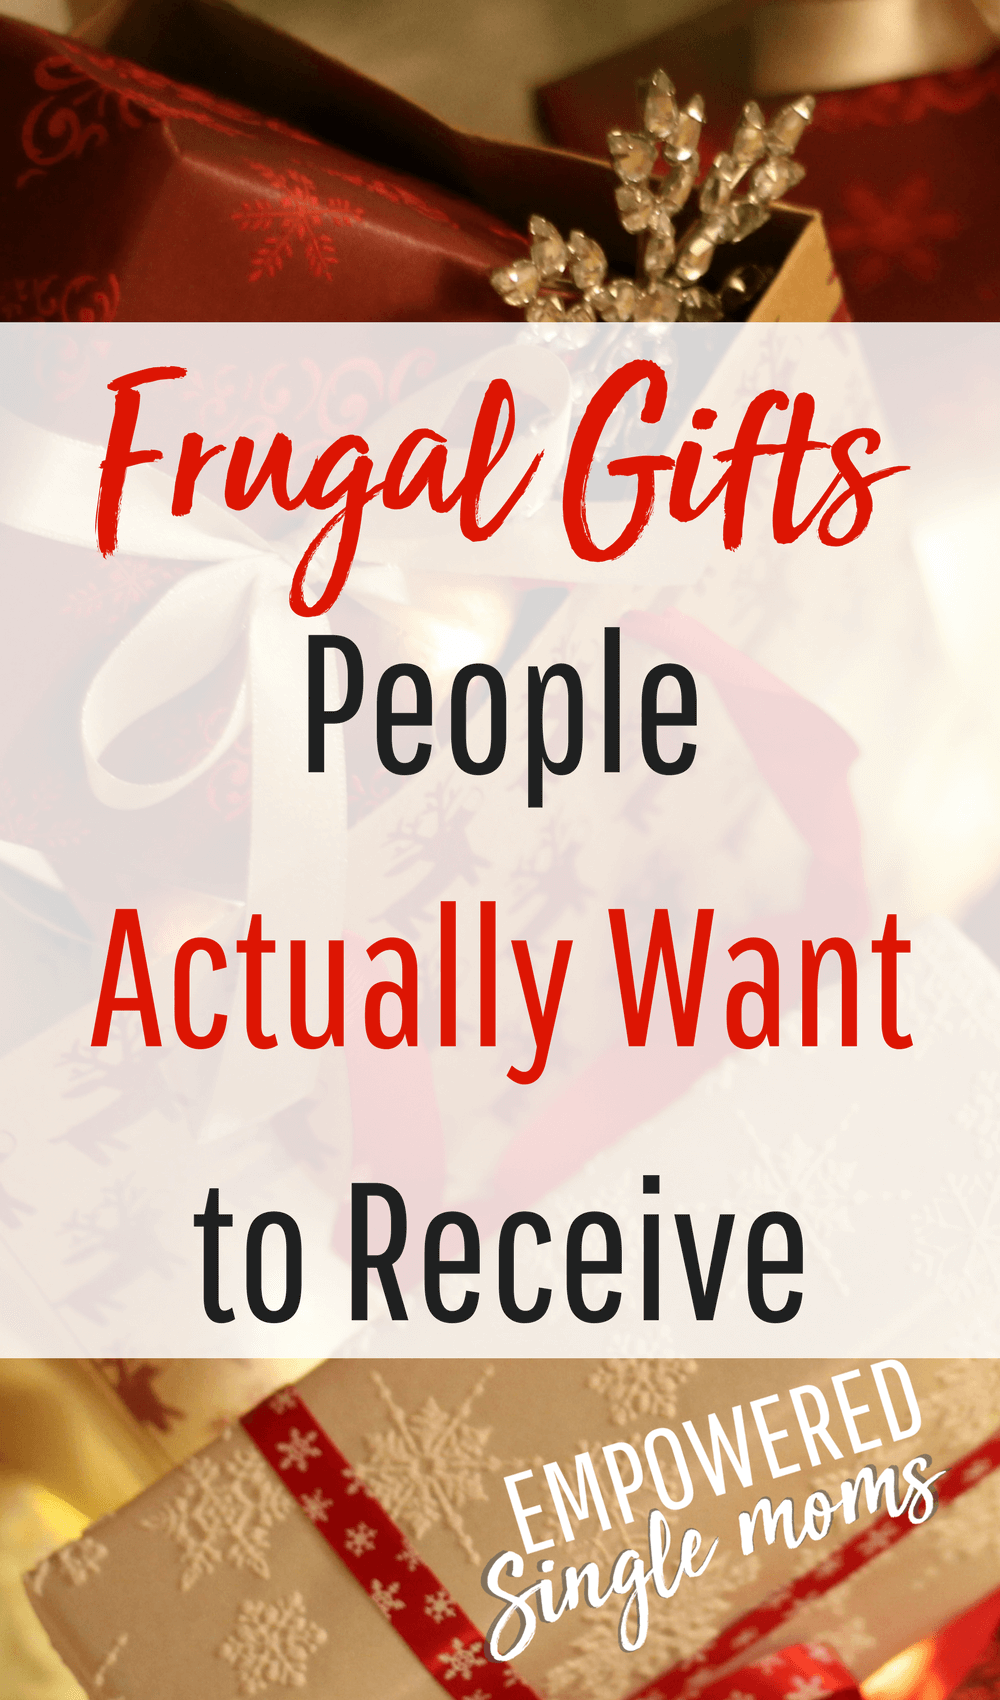 frugal gifts people like